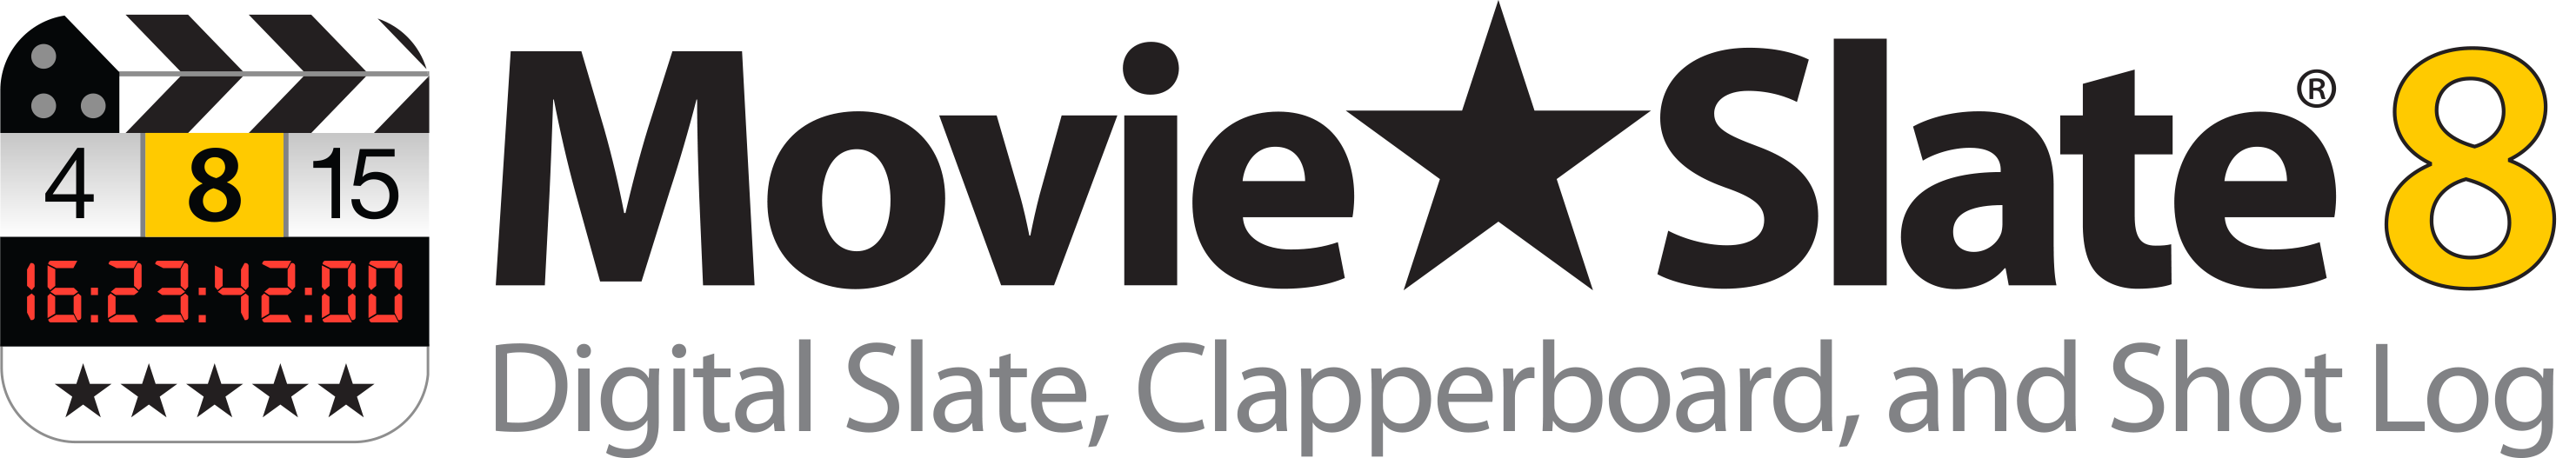 Image: MovieSlate 8 Logo on white